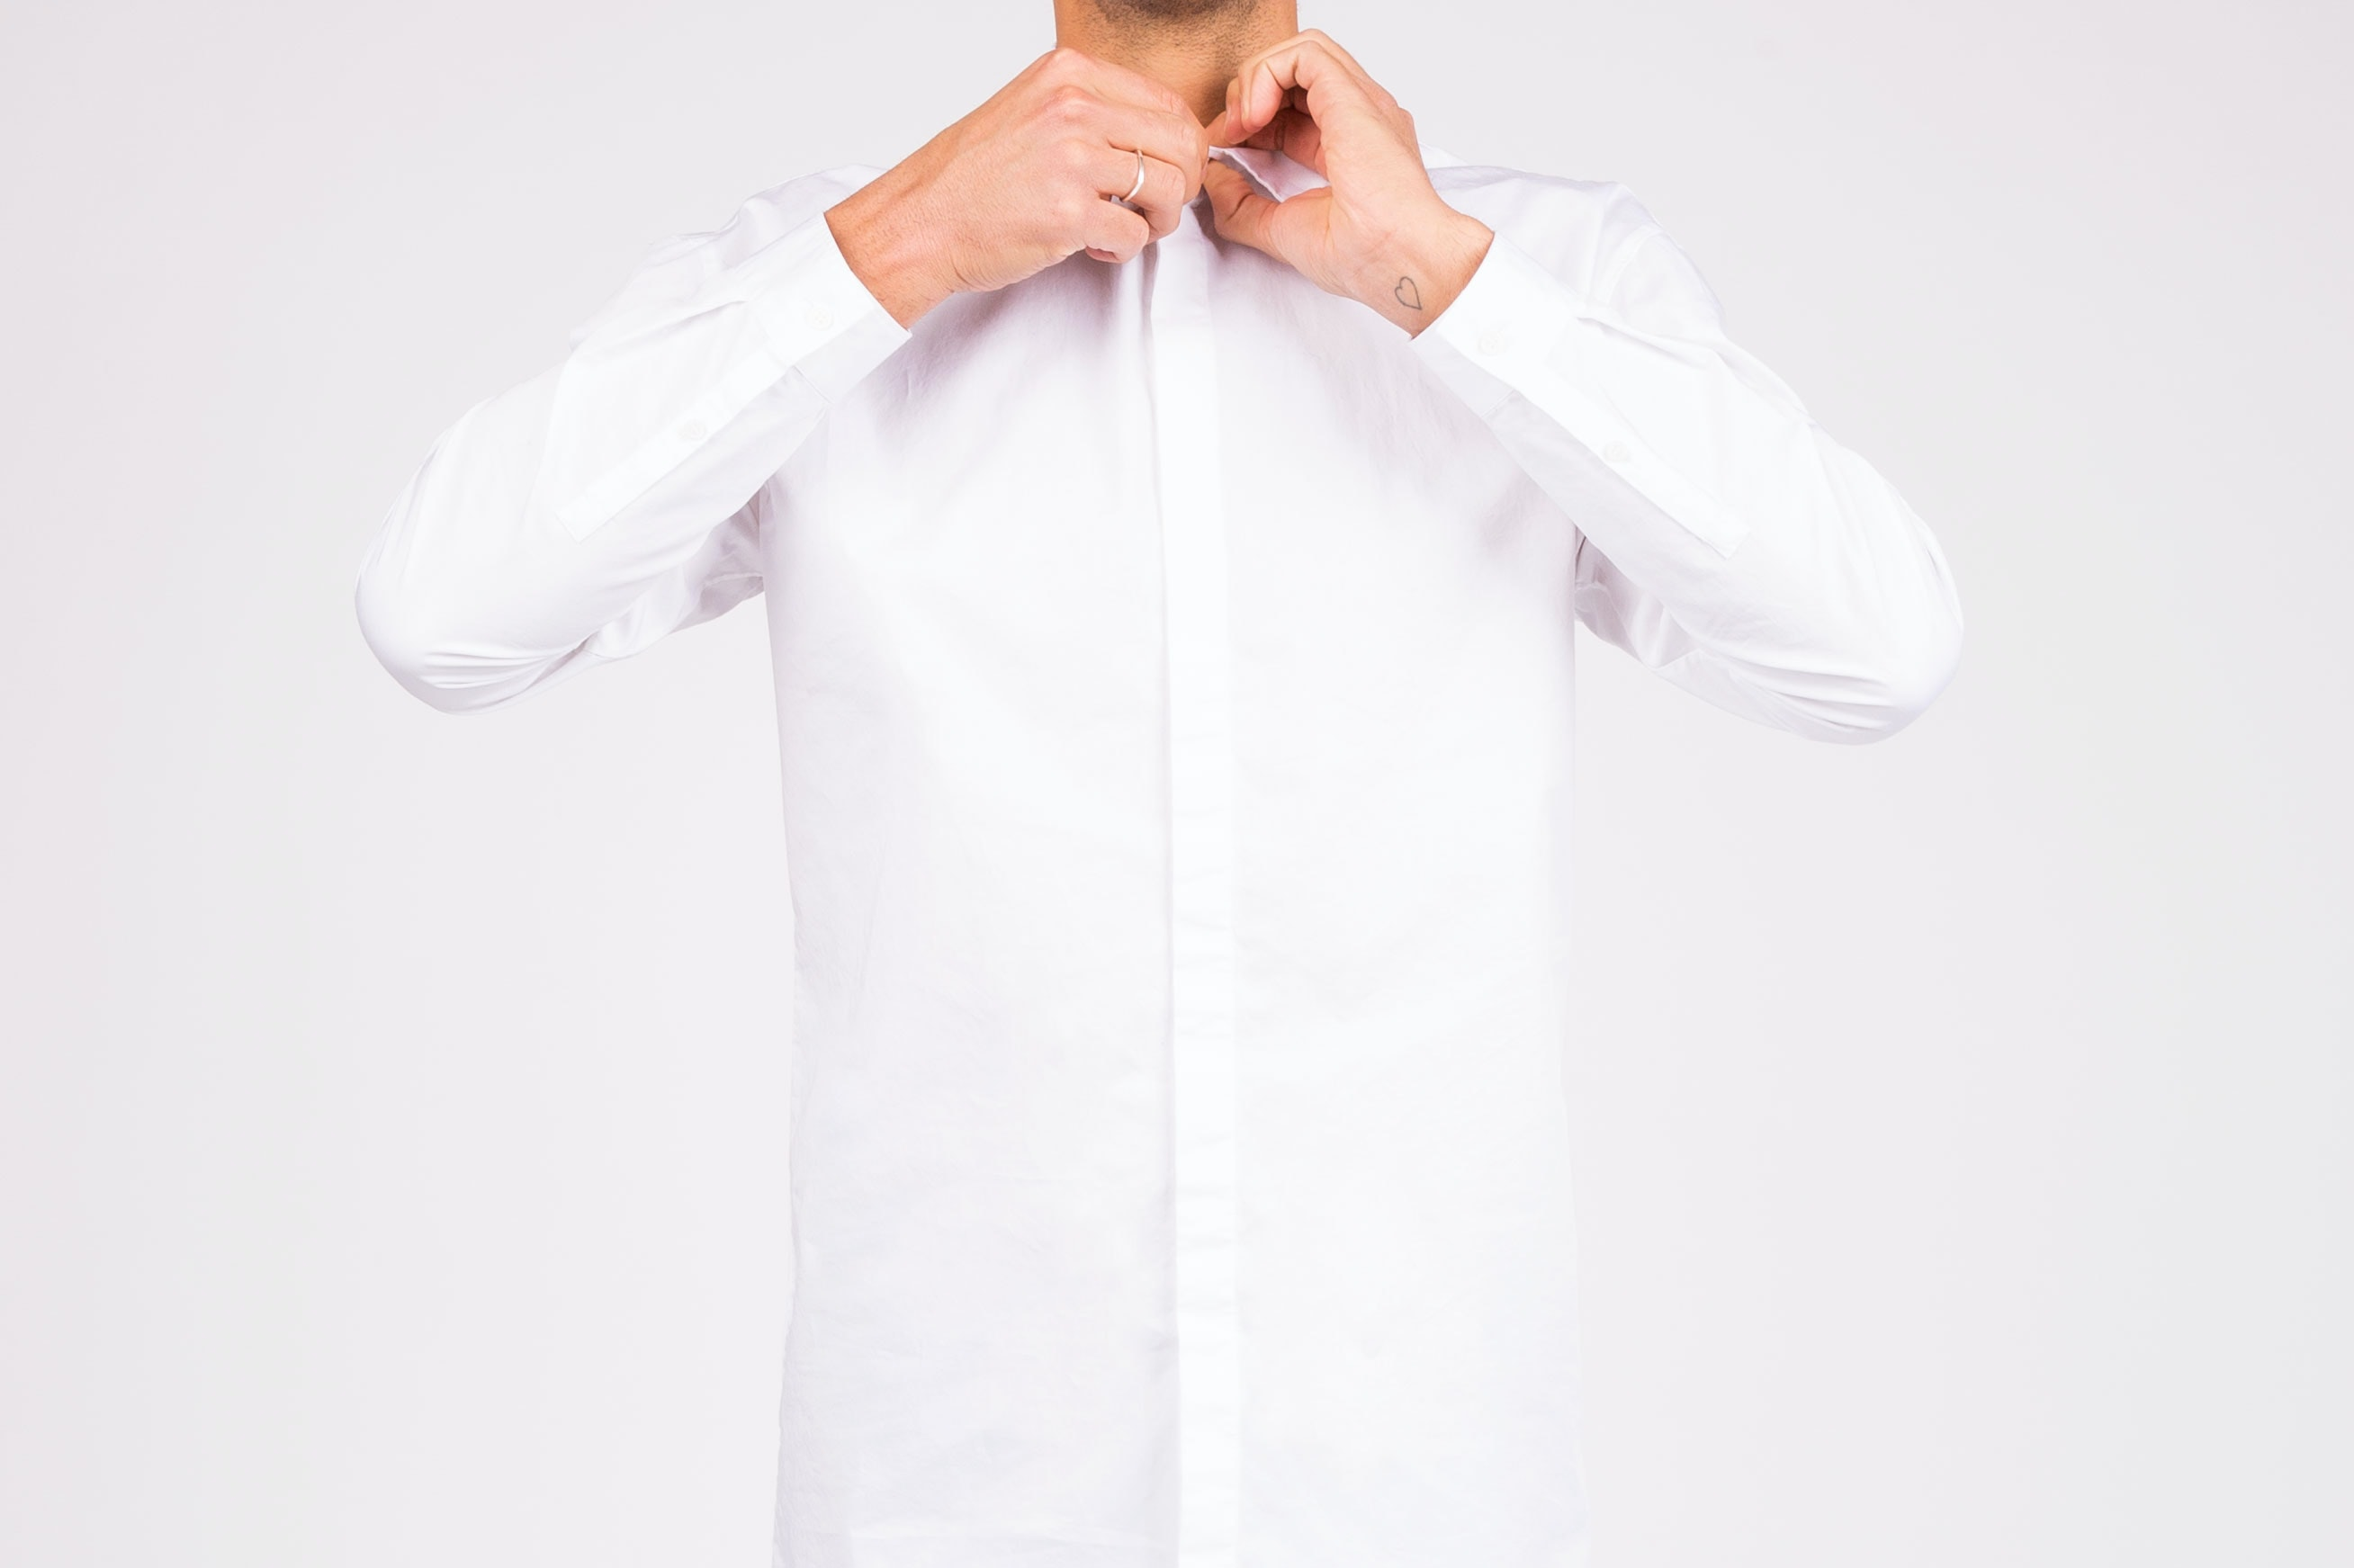 A man buttoning up a white shirt